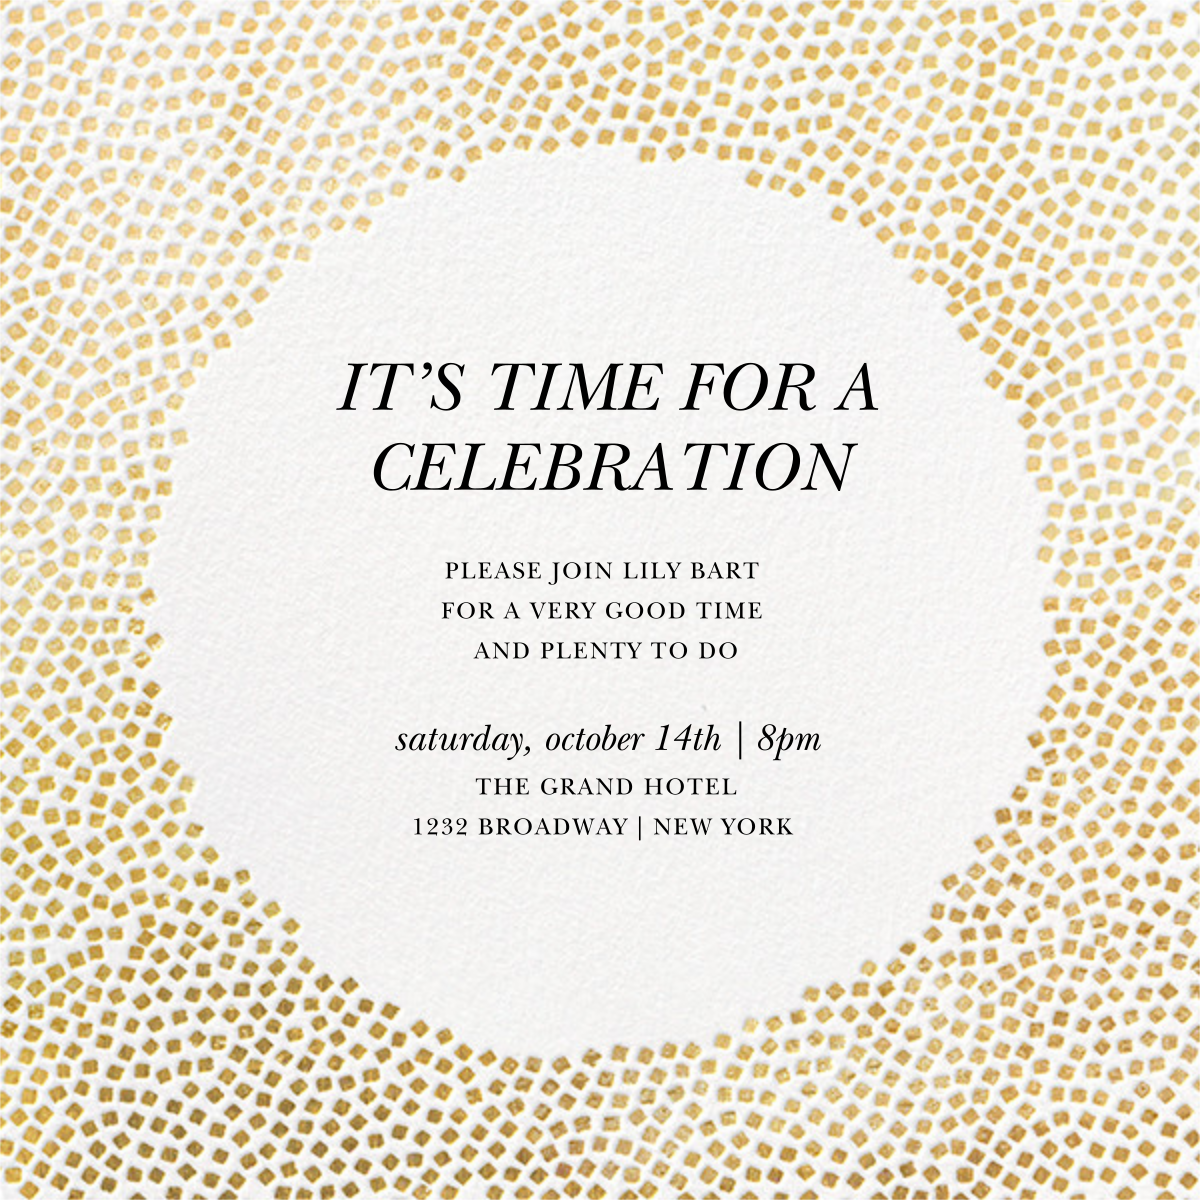 Konfetti - Gold - Kelly Wearstler - Invitations